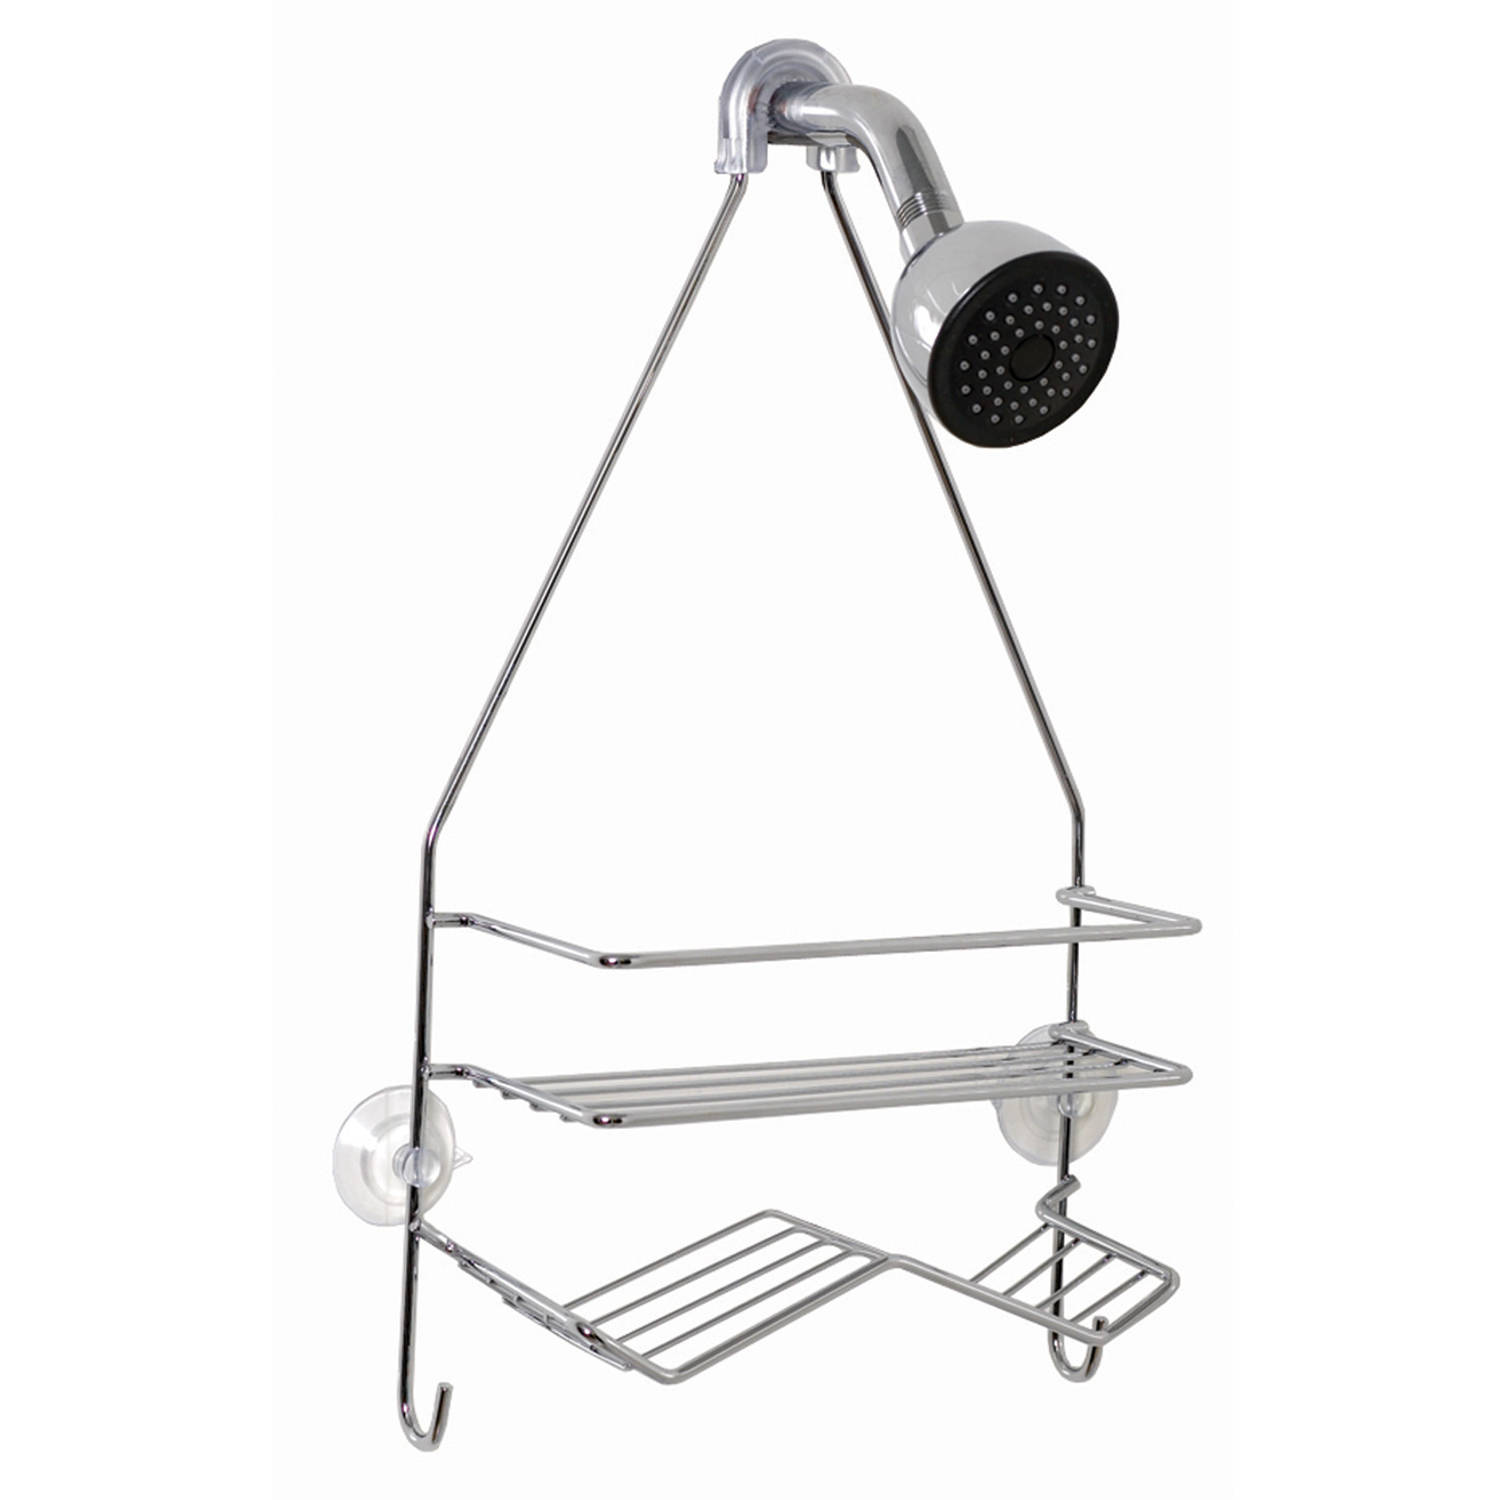 "Zenna Home 7518SS 10""W x 17.5""H x 3.63"" D Chrome Shower Caddy"